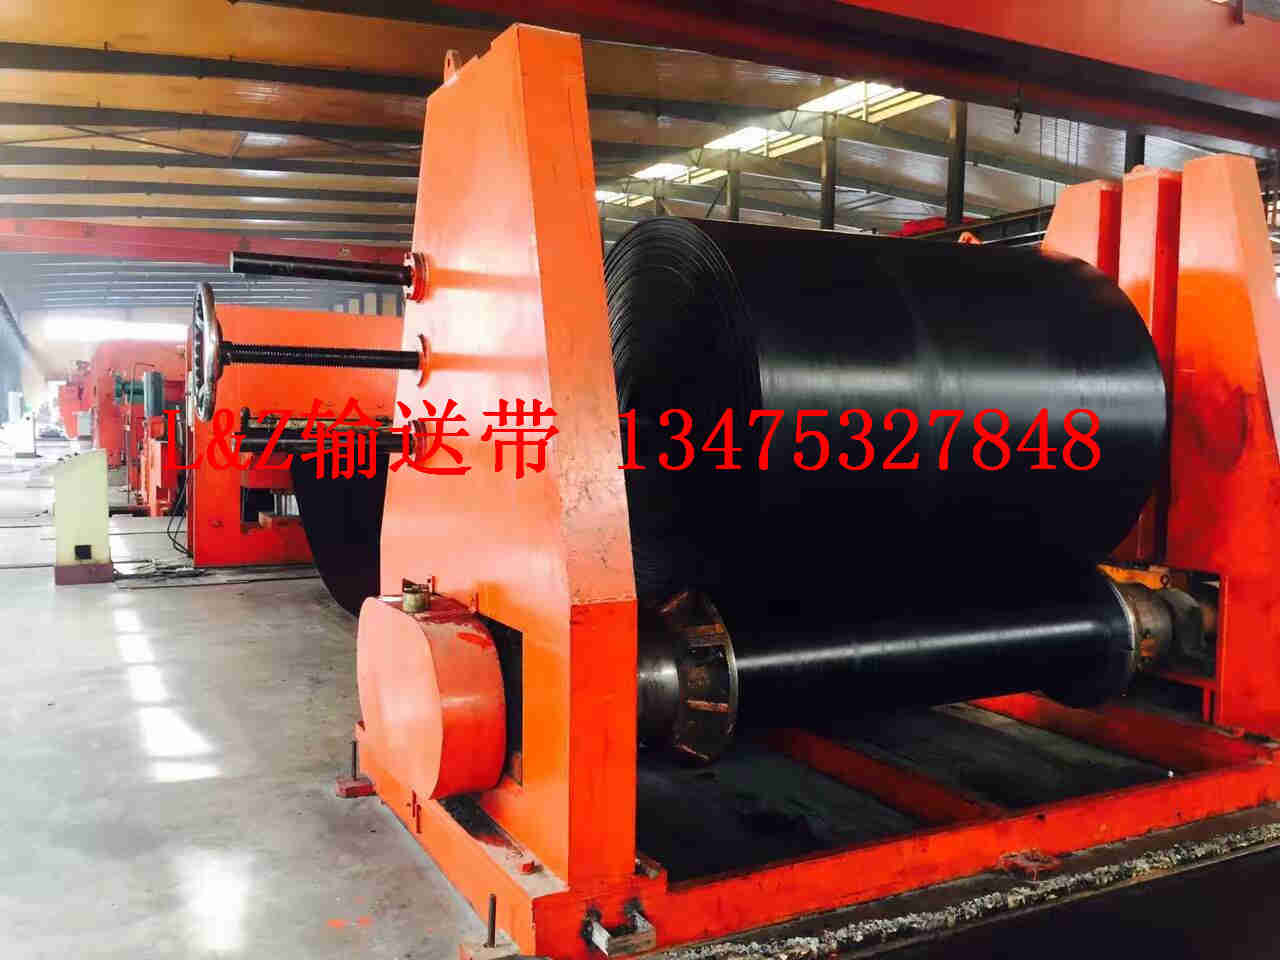 How to repair the conveyor belt in China?